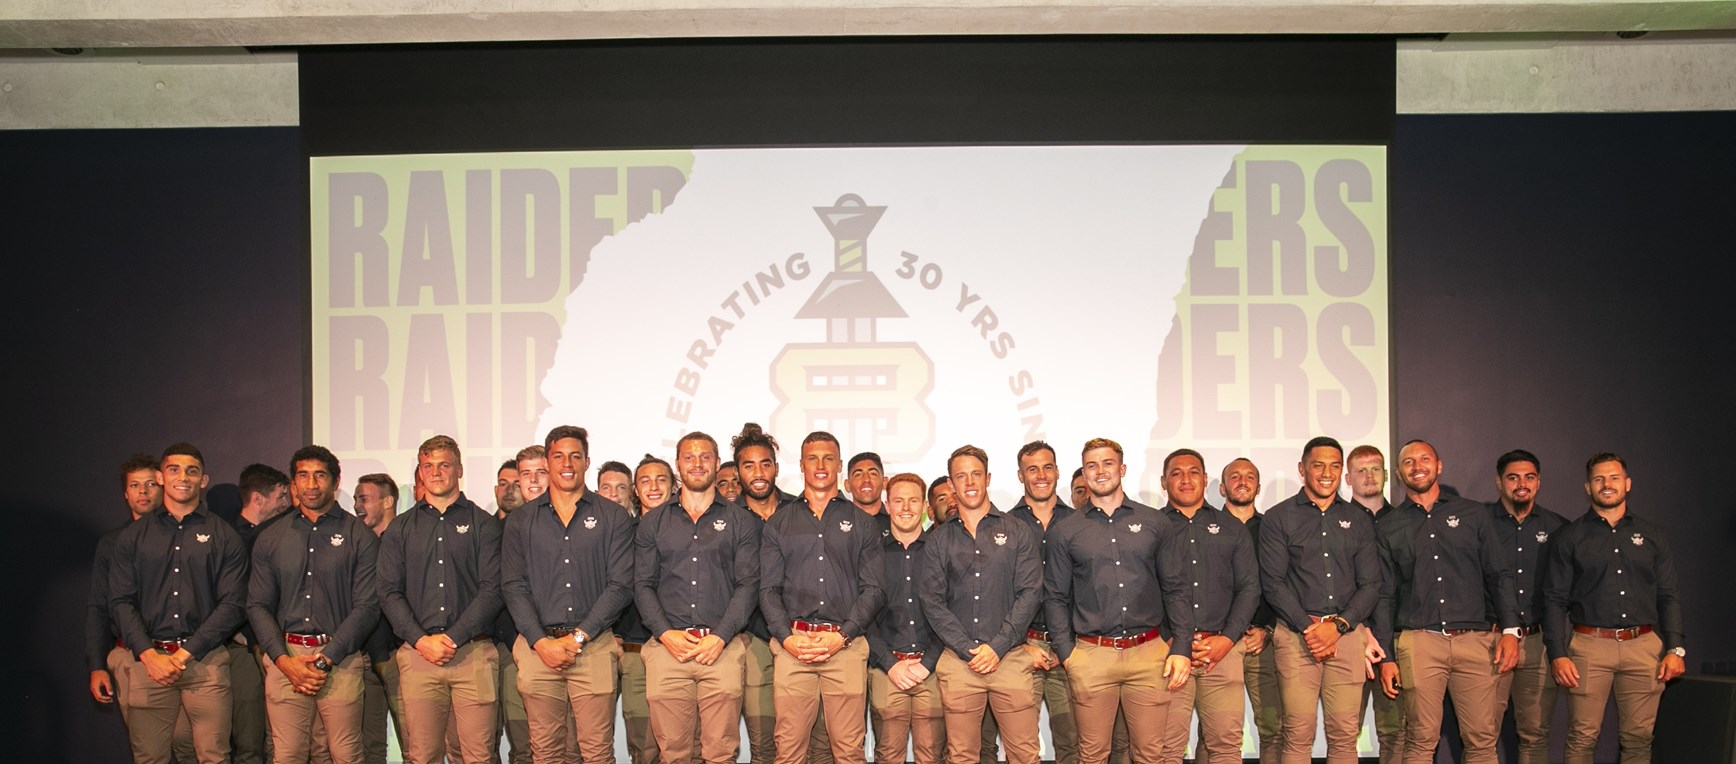 Canberra Raiders 2019 season launch